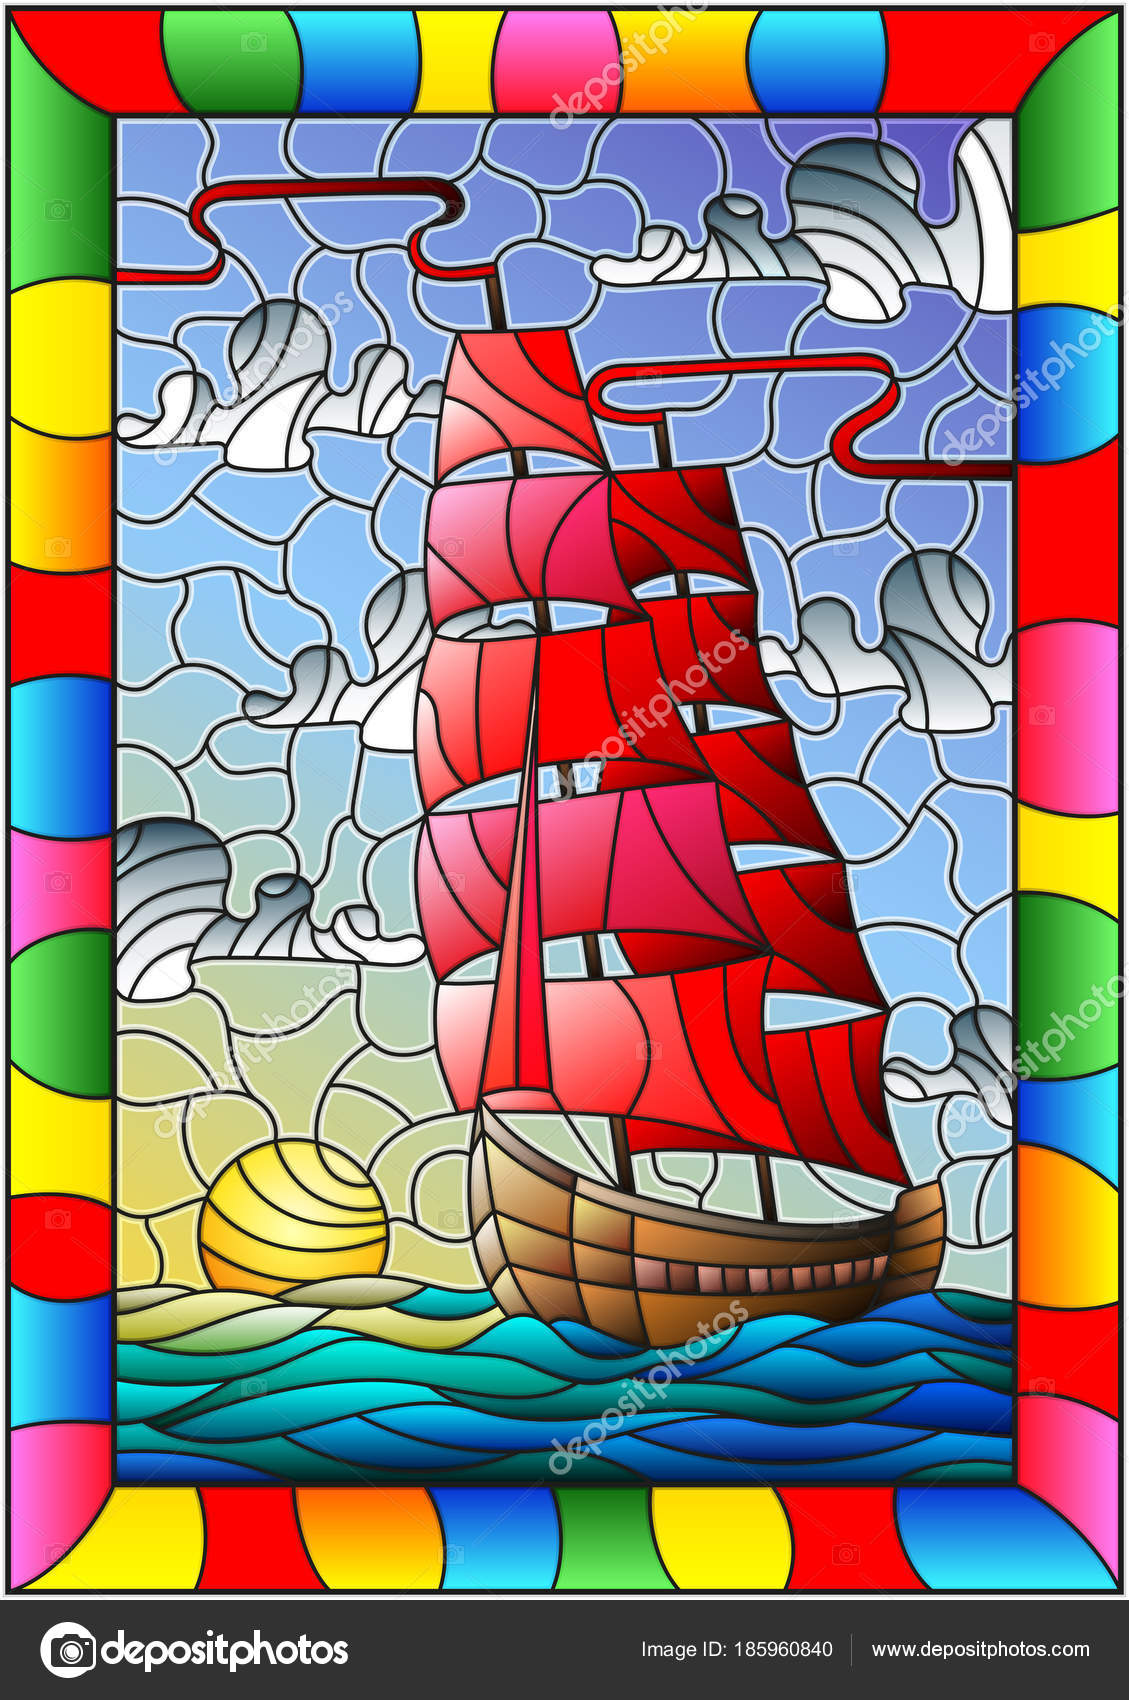 Illustration In Stained Glass Style With An Old Ship Sailing With